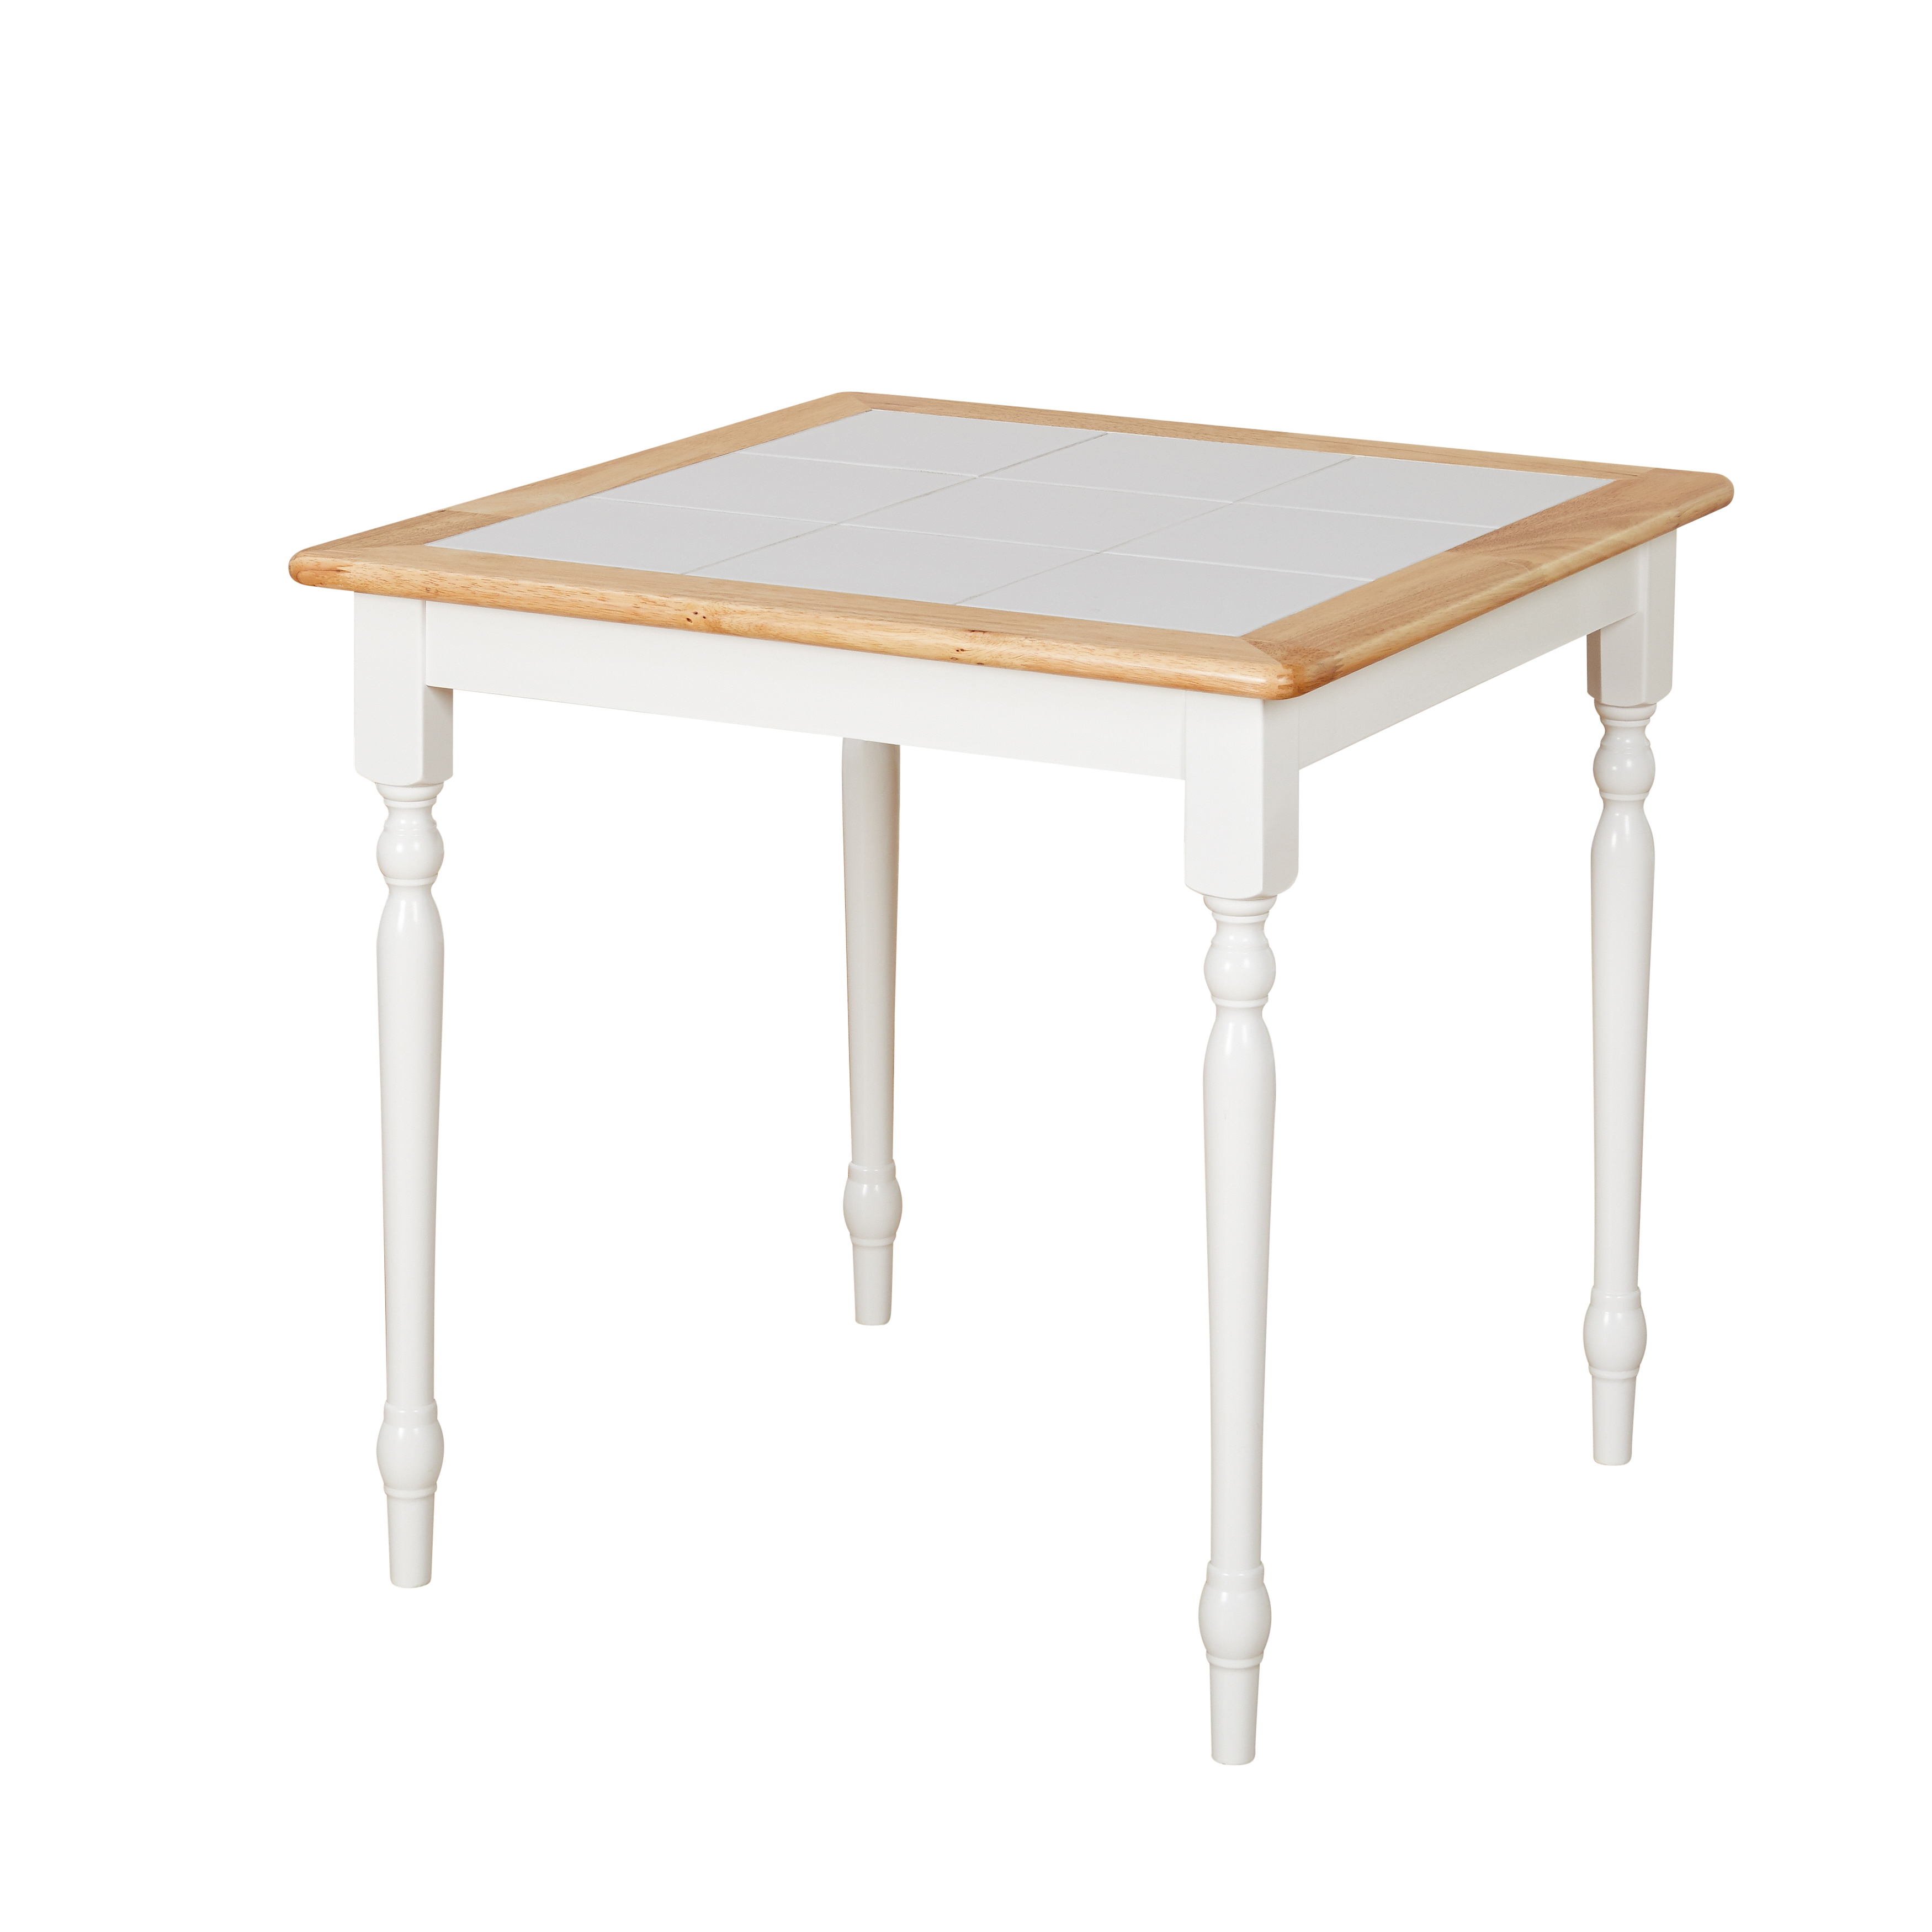 TMS Tile Top Square Dining Table, White/Natural